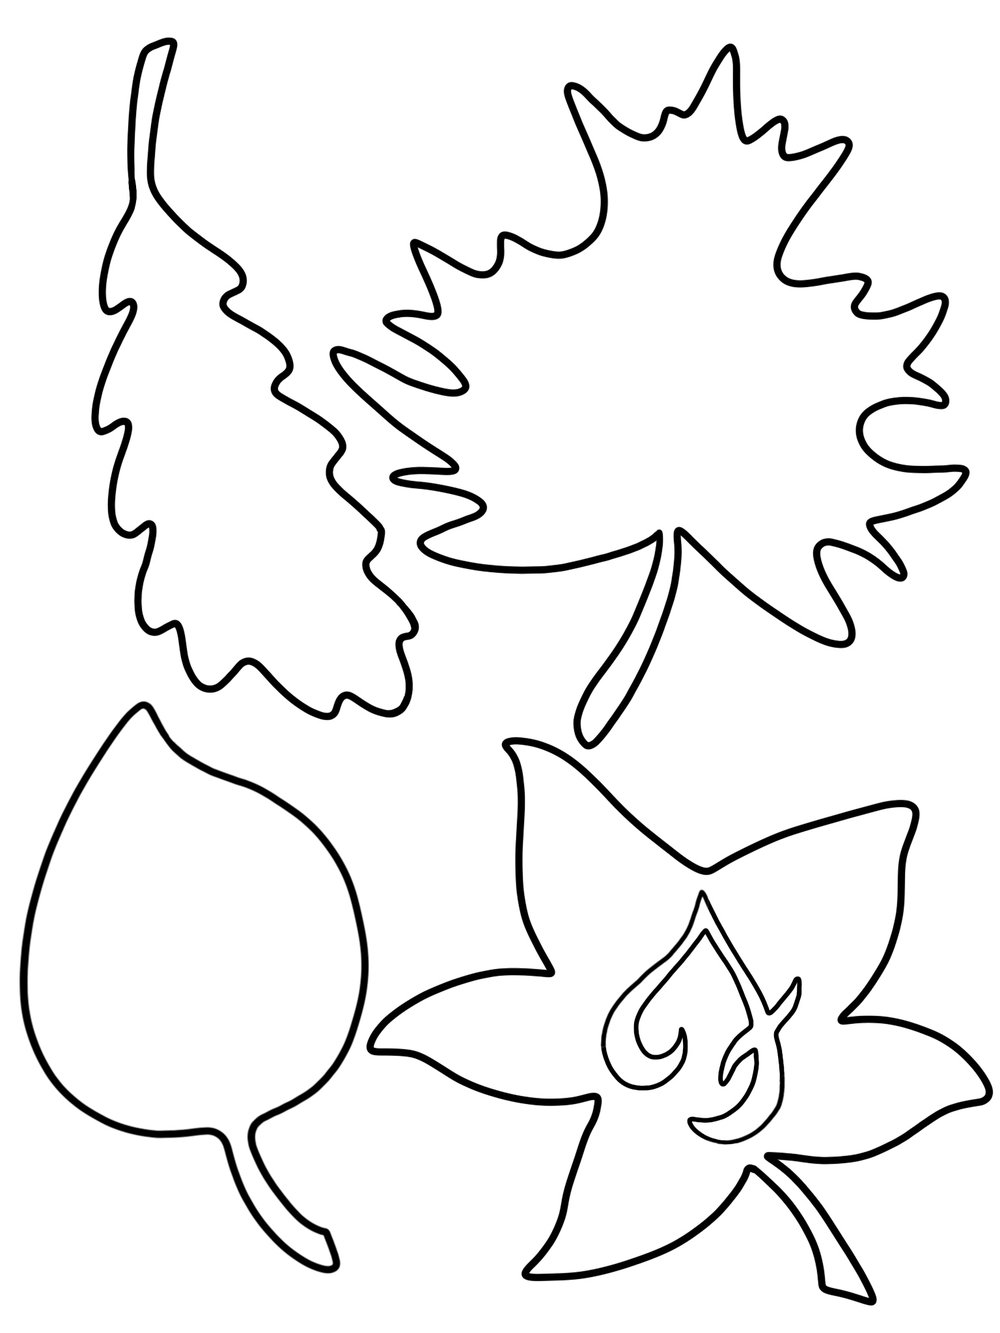 Right click to download and save FableVision's leaf cutout template!